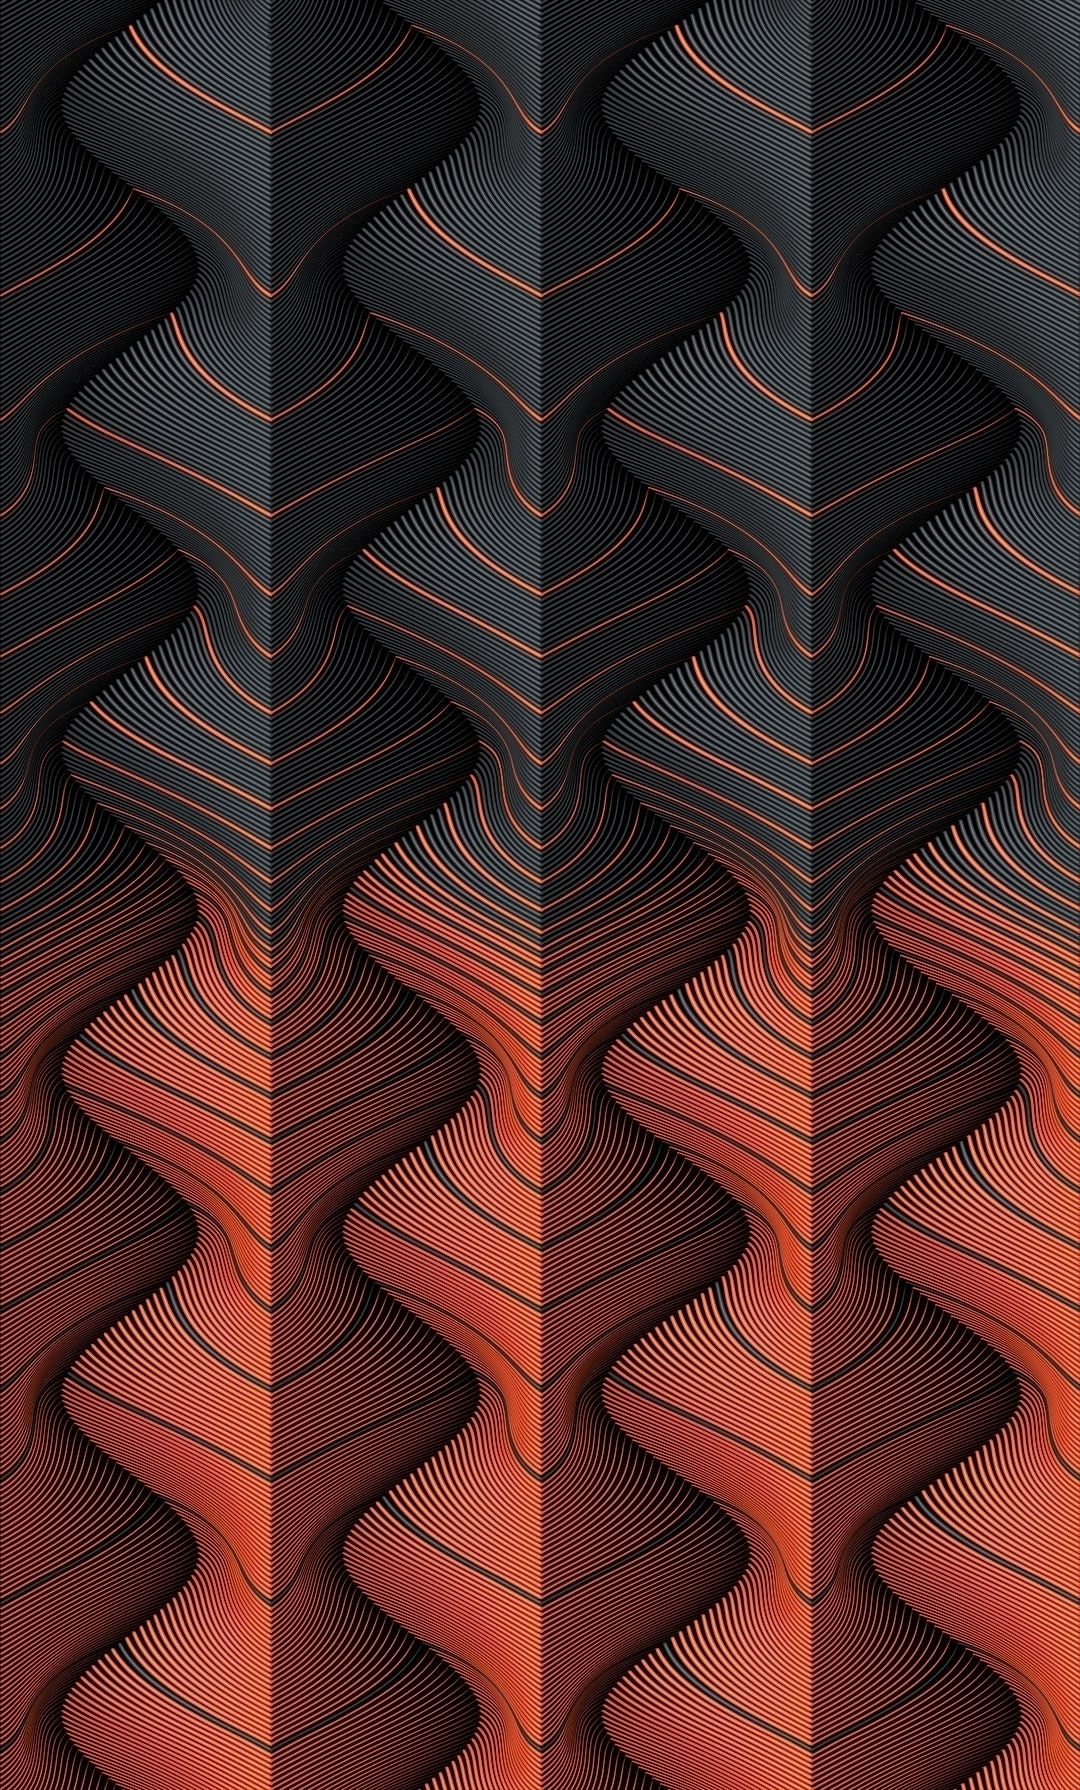 Novelty Waves 5 - 02 - abstract - mariodemeyer | ello